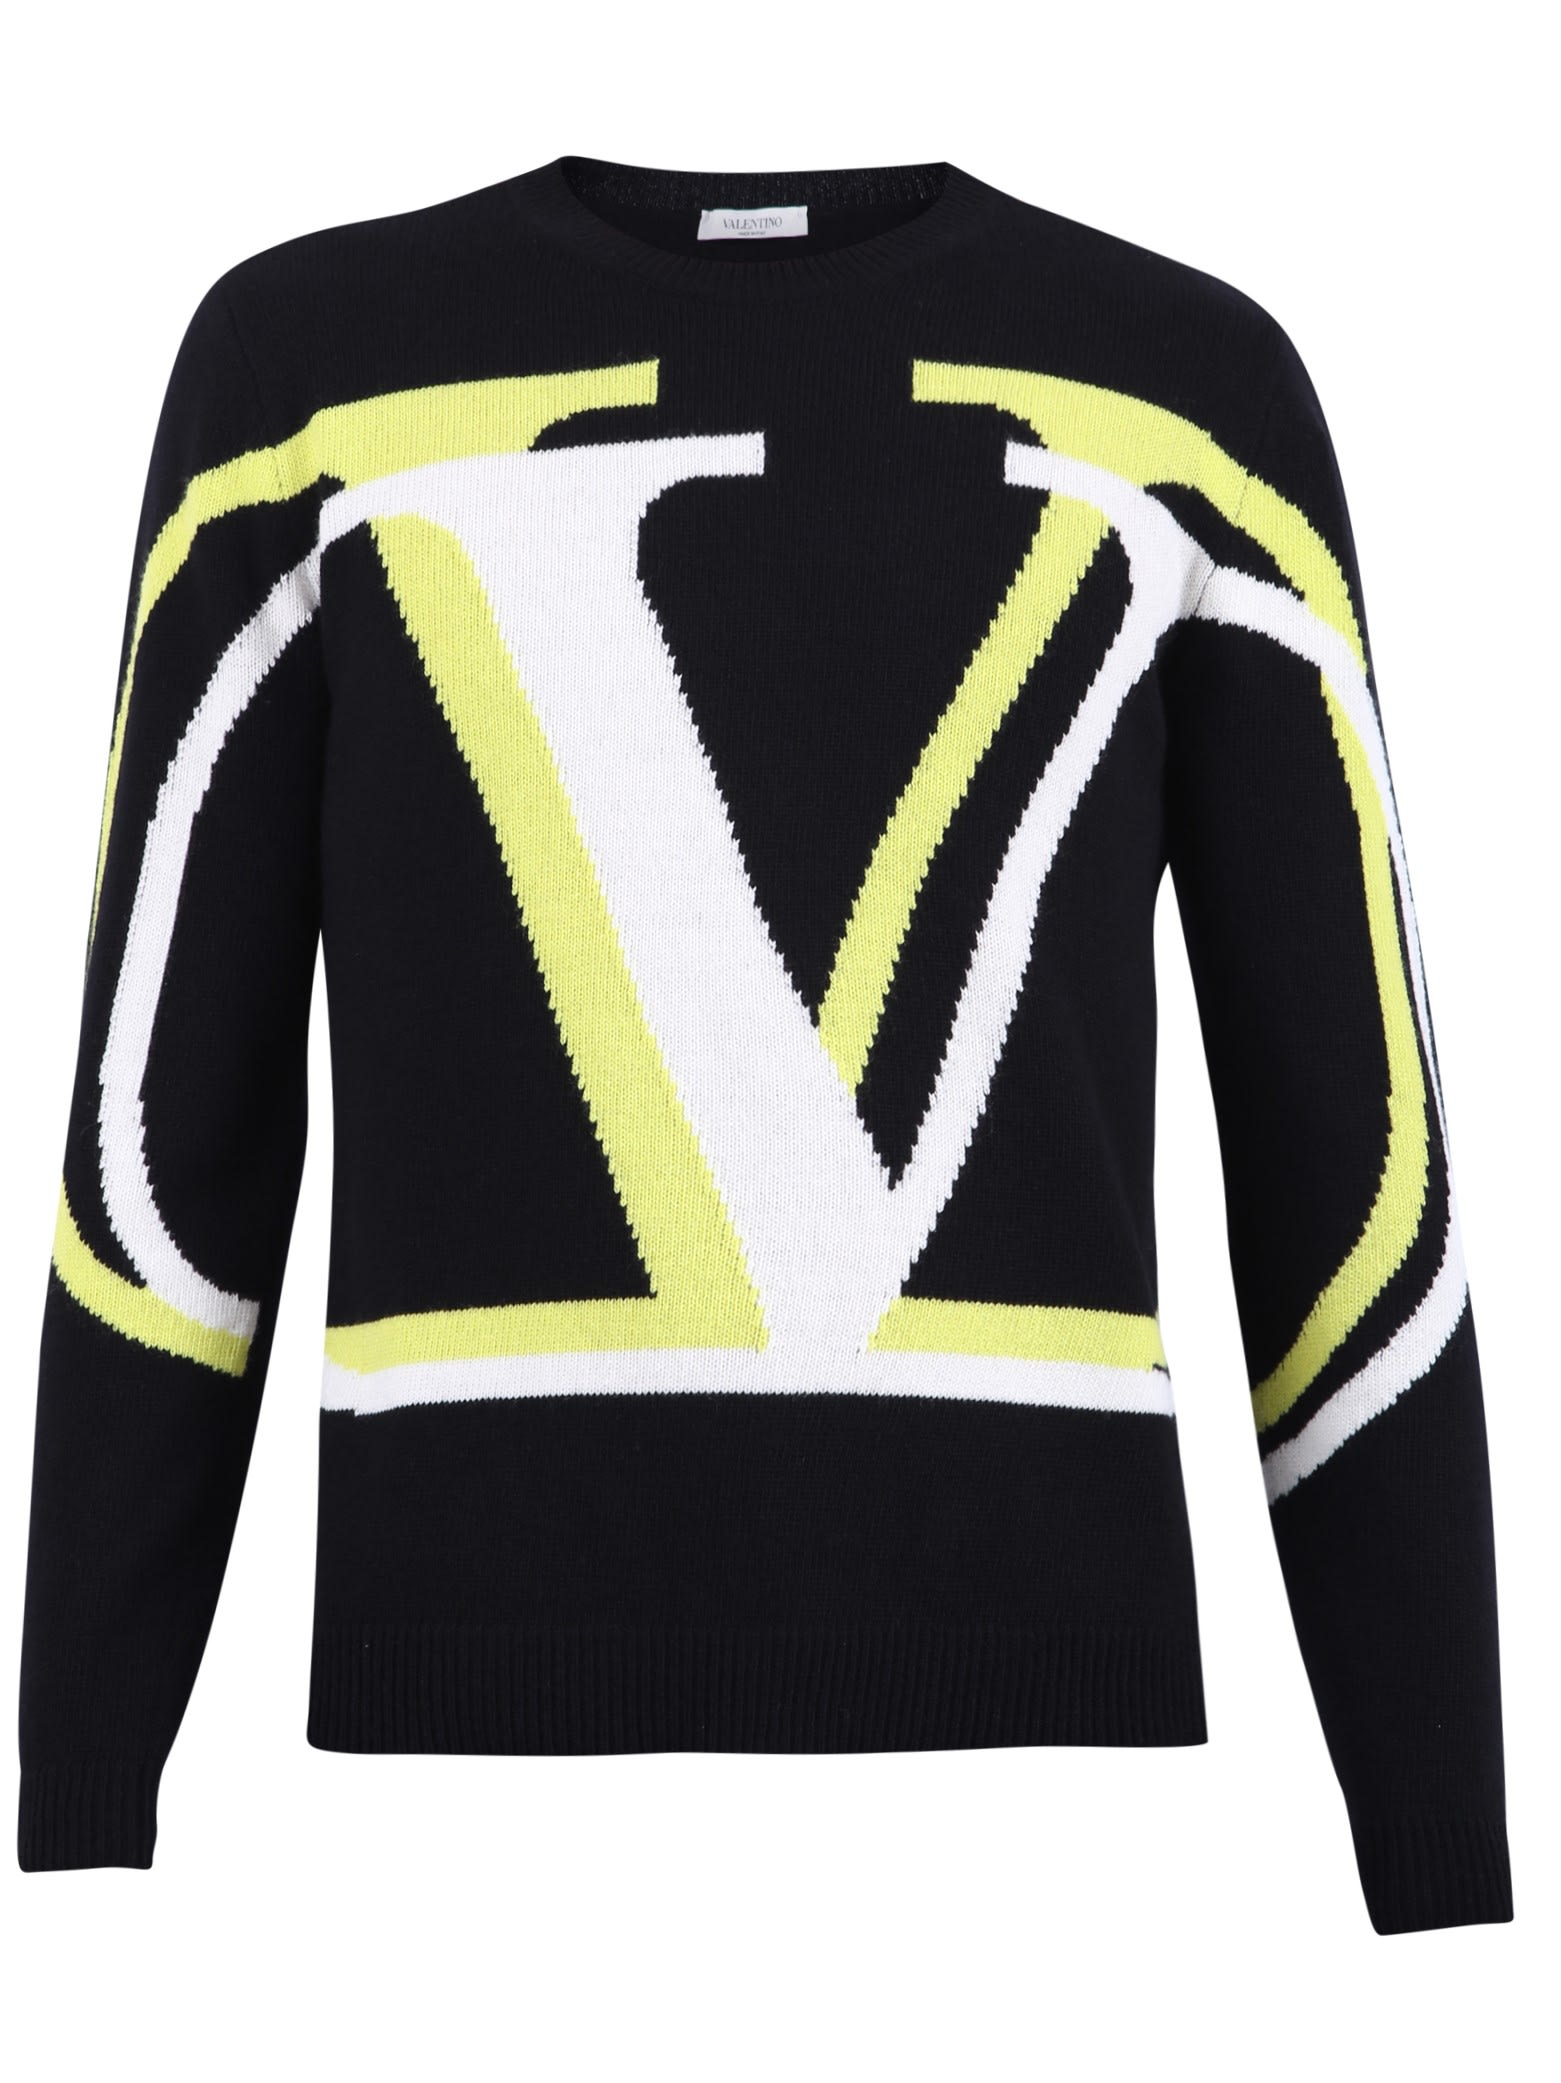 Valentino Branded Sweater